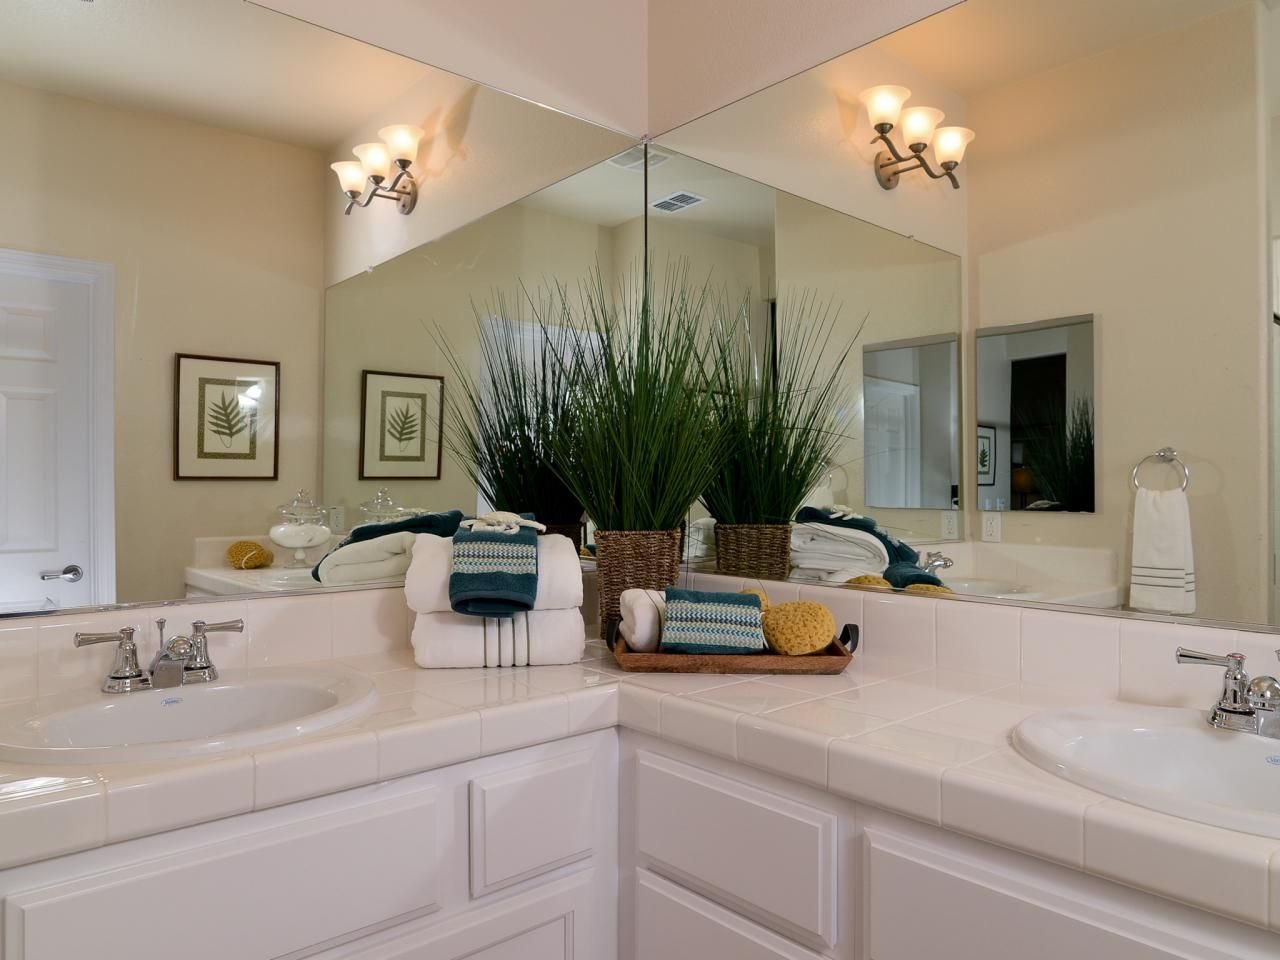 Two Large Vanities Meet In The Corner Creating An L Shaped Counter In This Traditional Bathroom